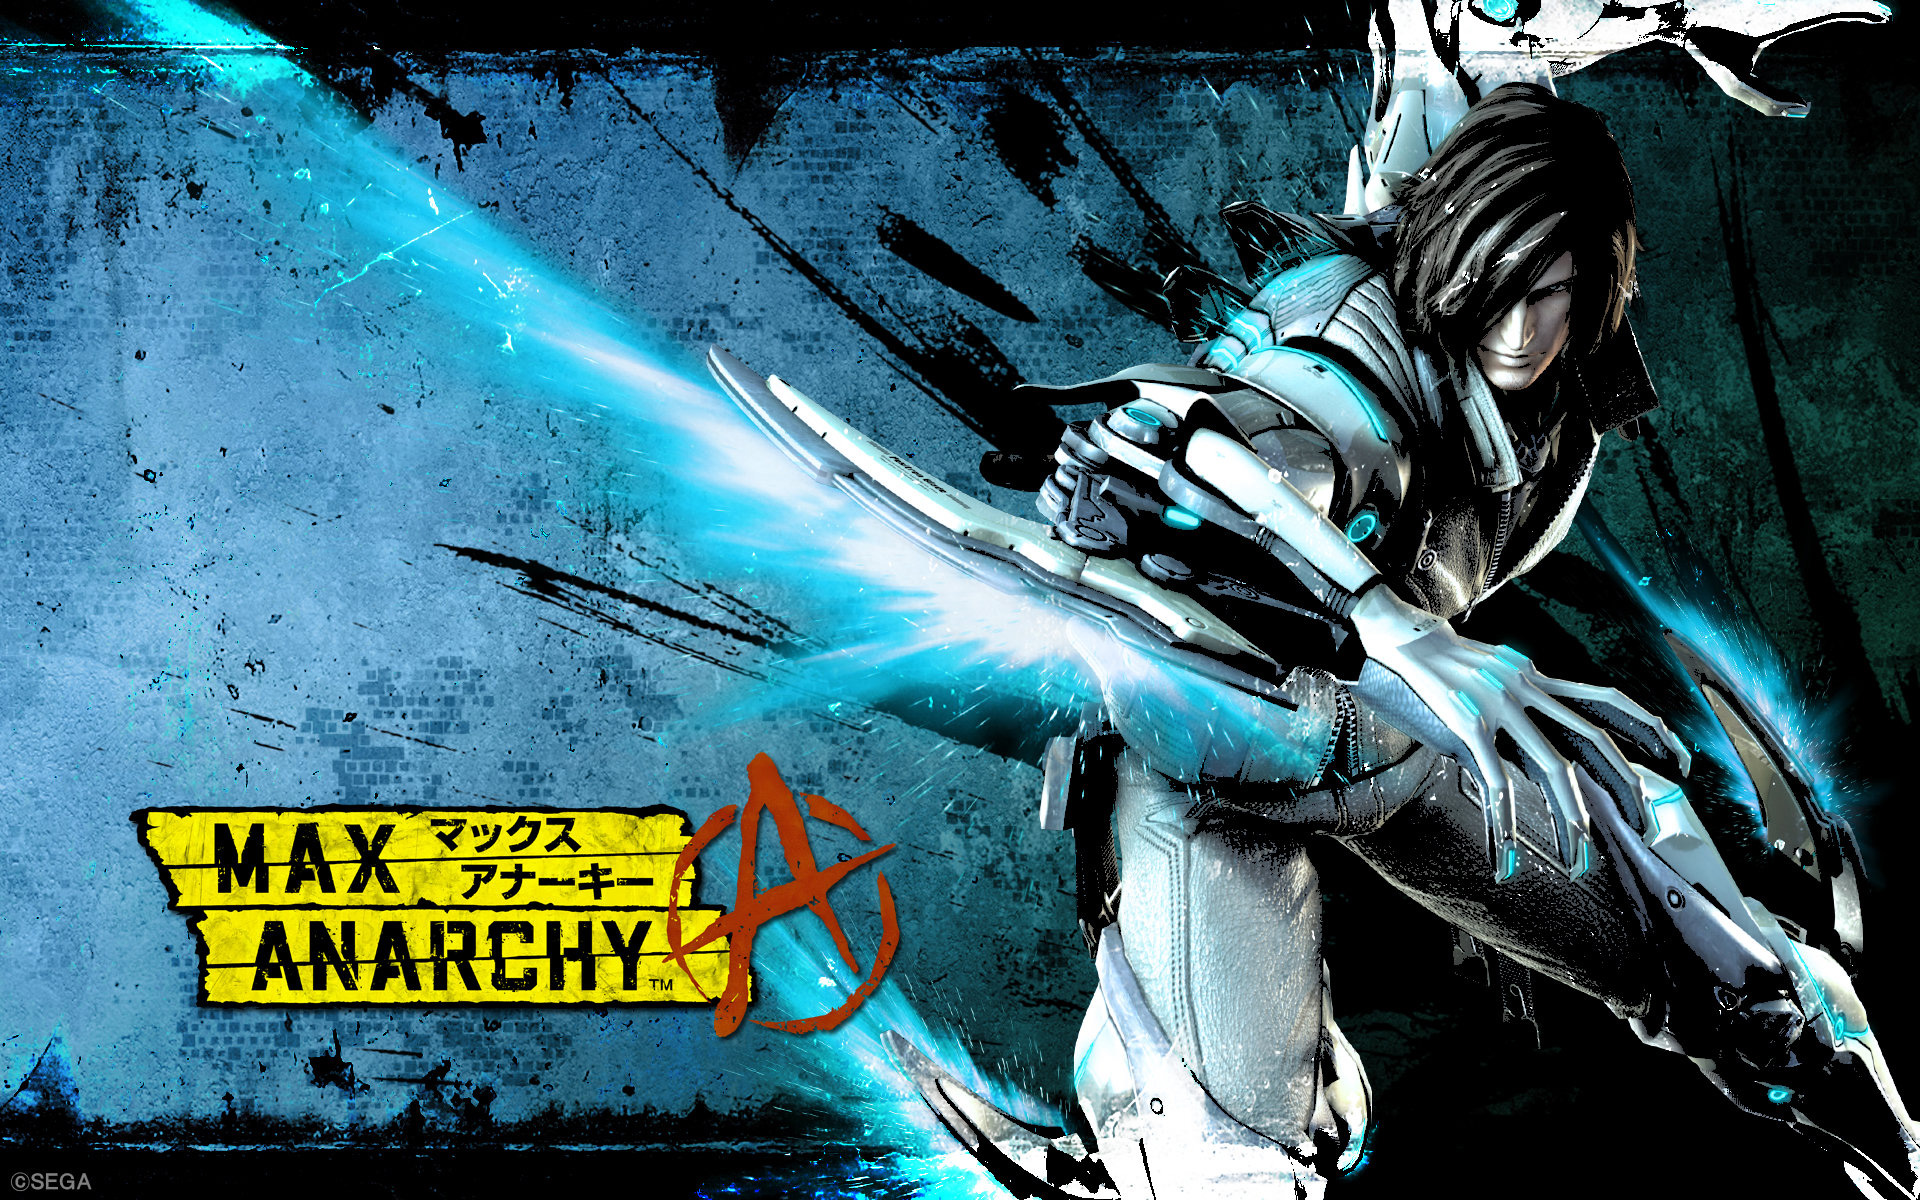 Free Anarchy Reigns Wallpaper in 1920x1200